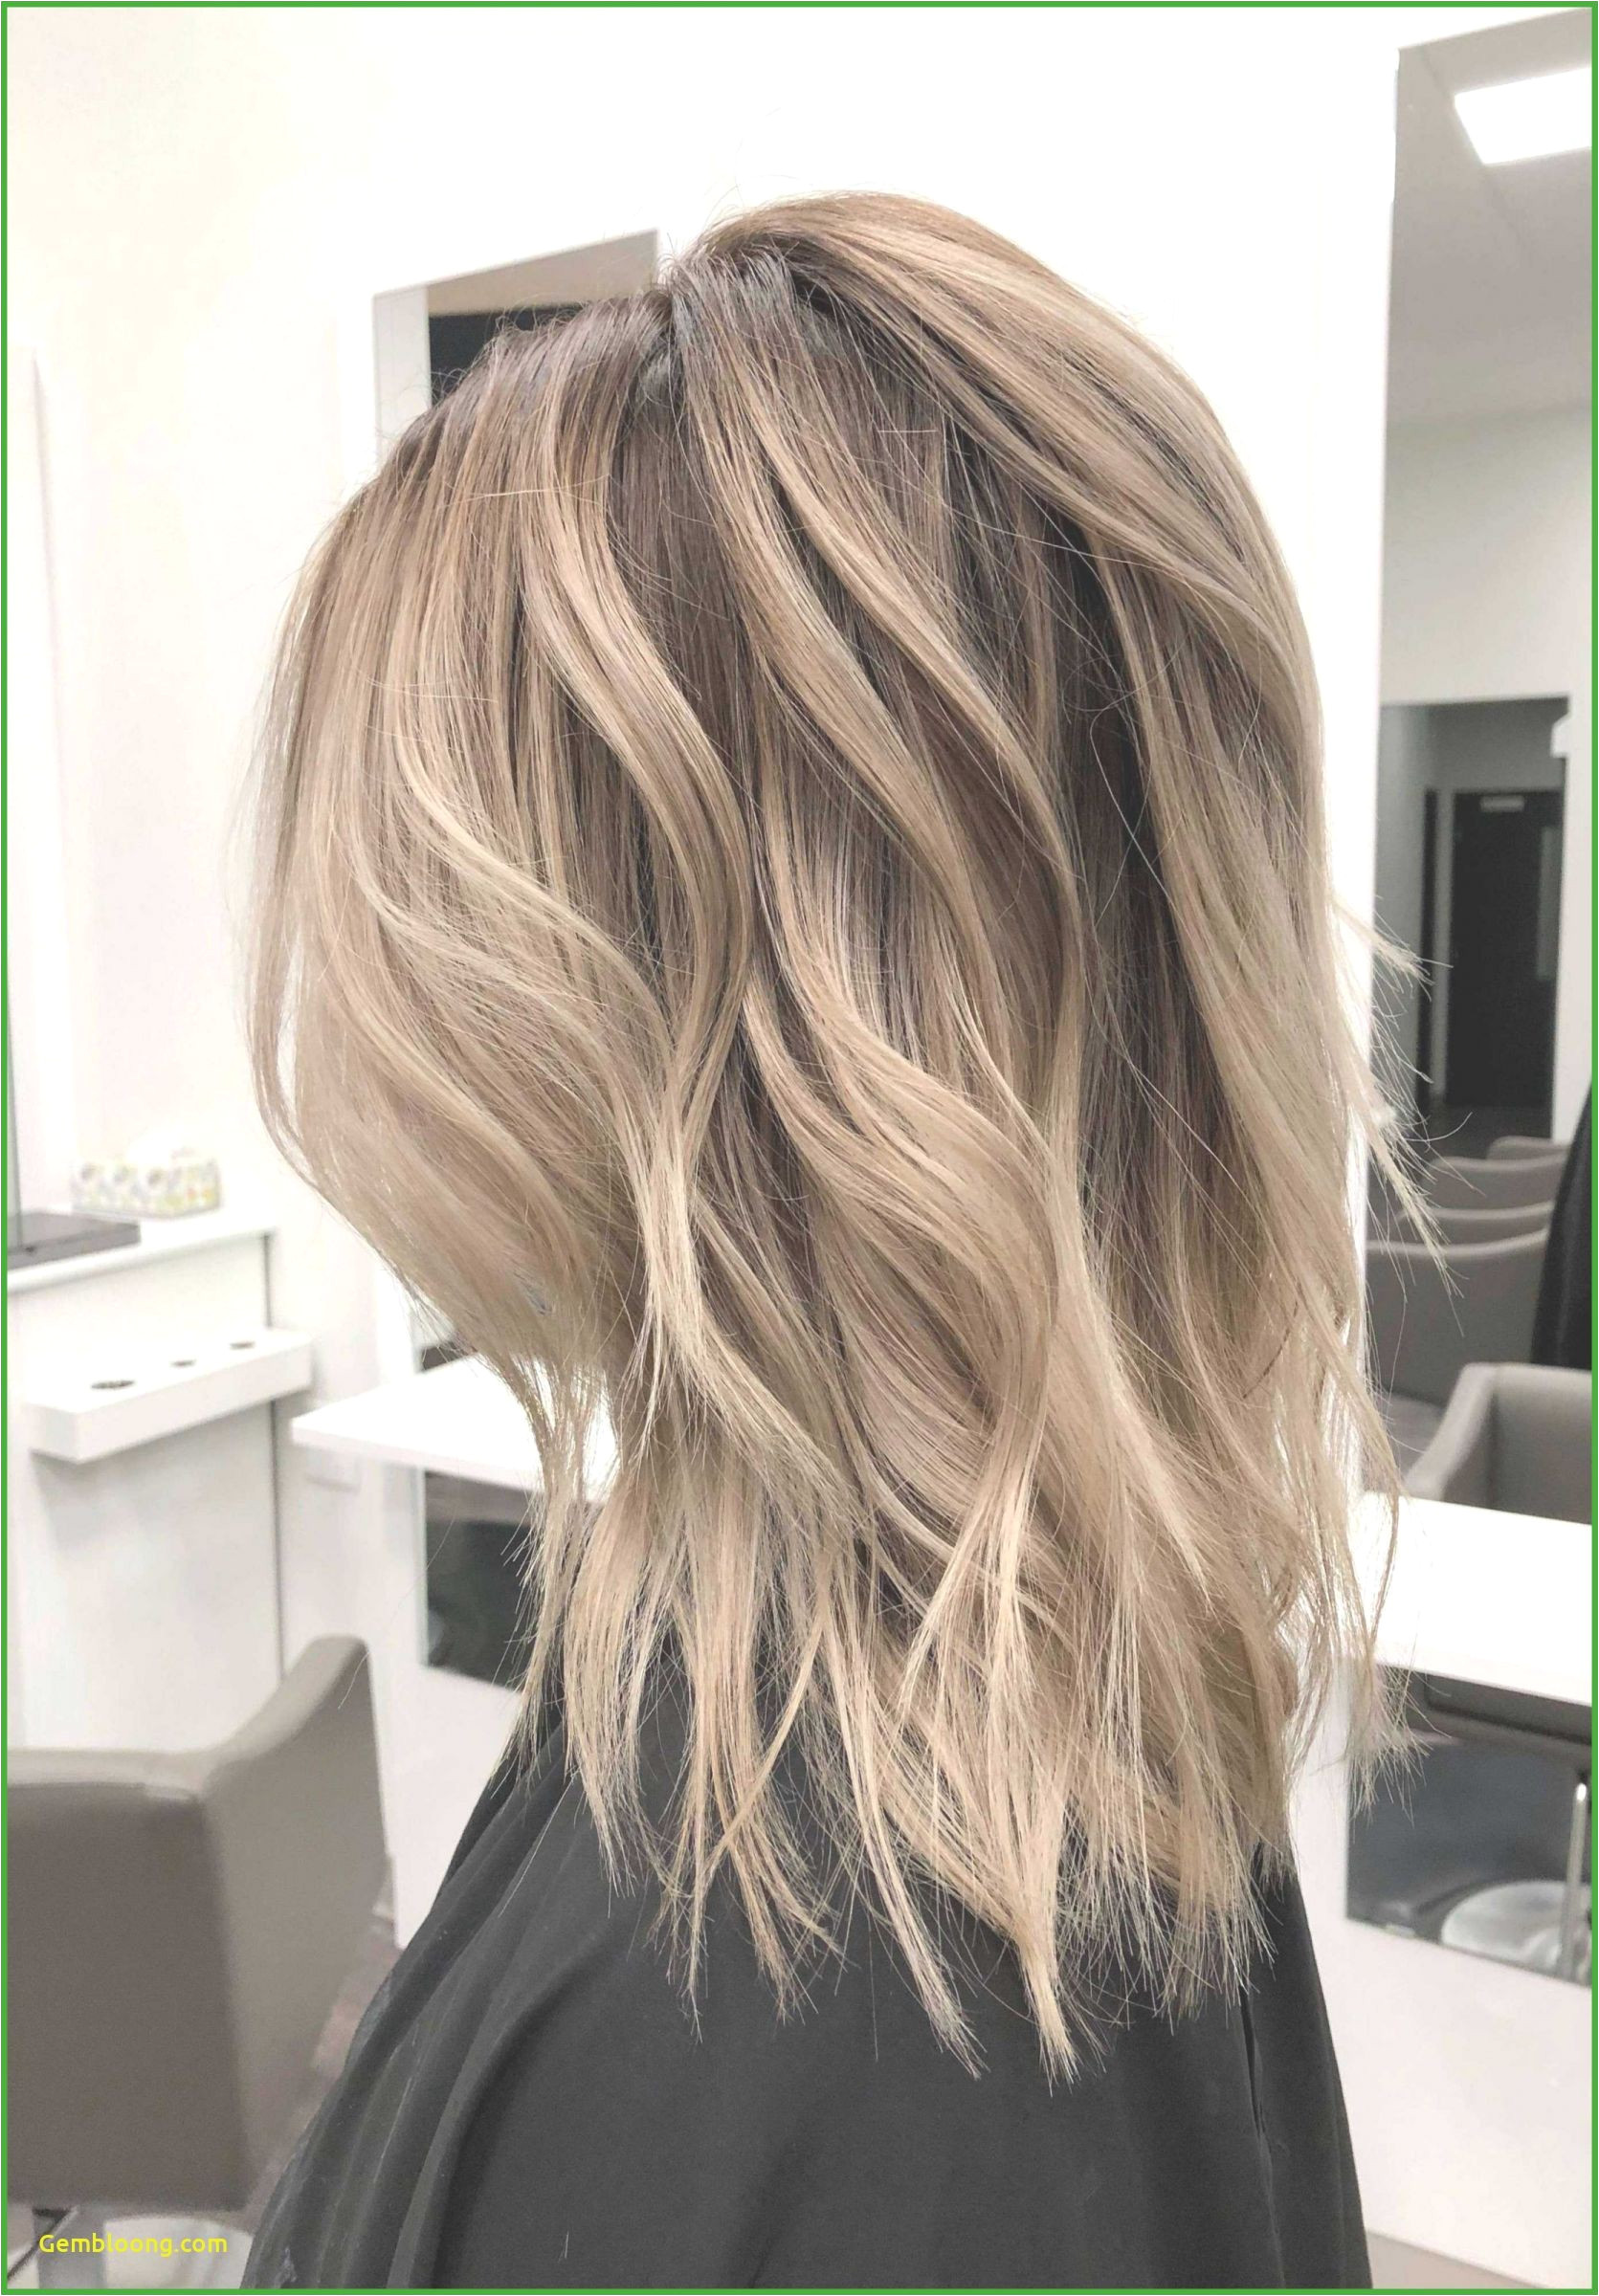 Hairstyles Haircuts Luxury Haircuts for Medium Long Hair Layered Haircut for Long Hair 0d